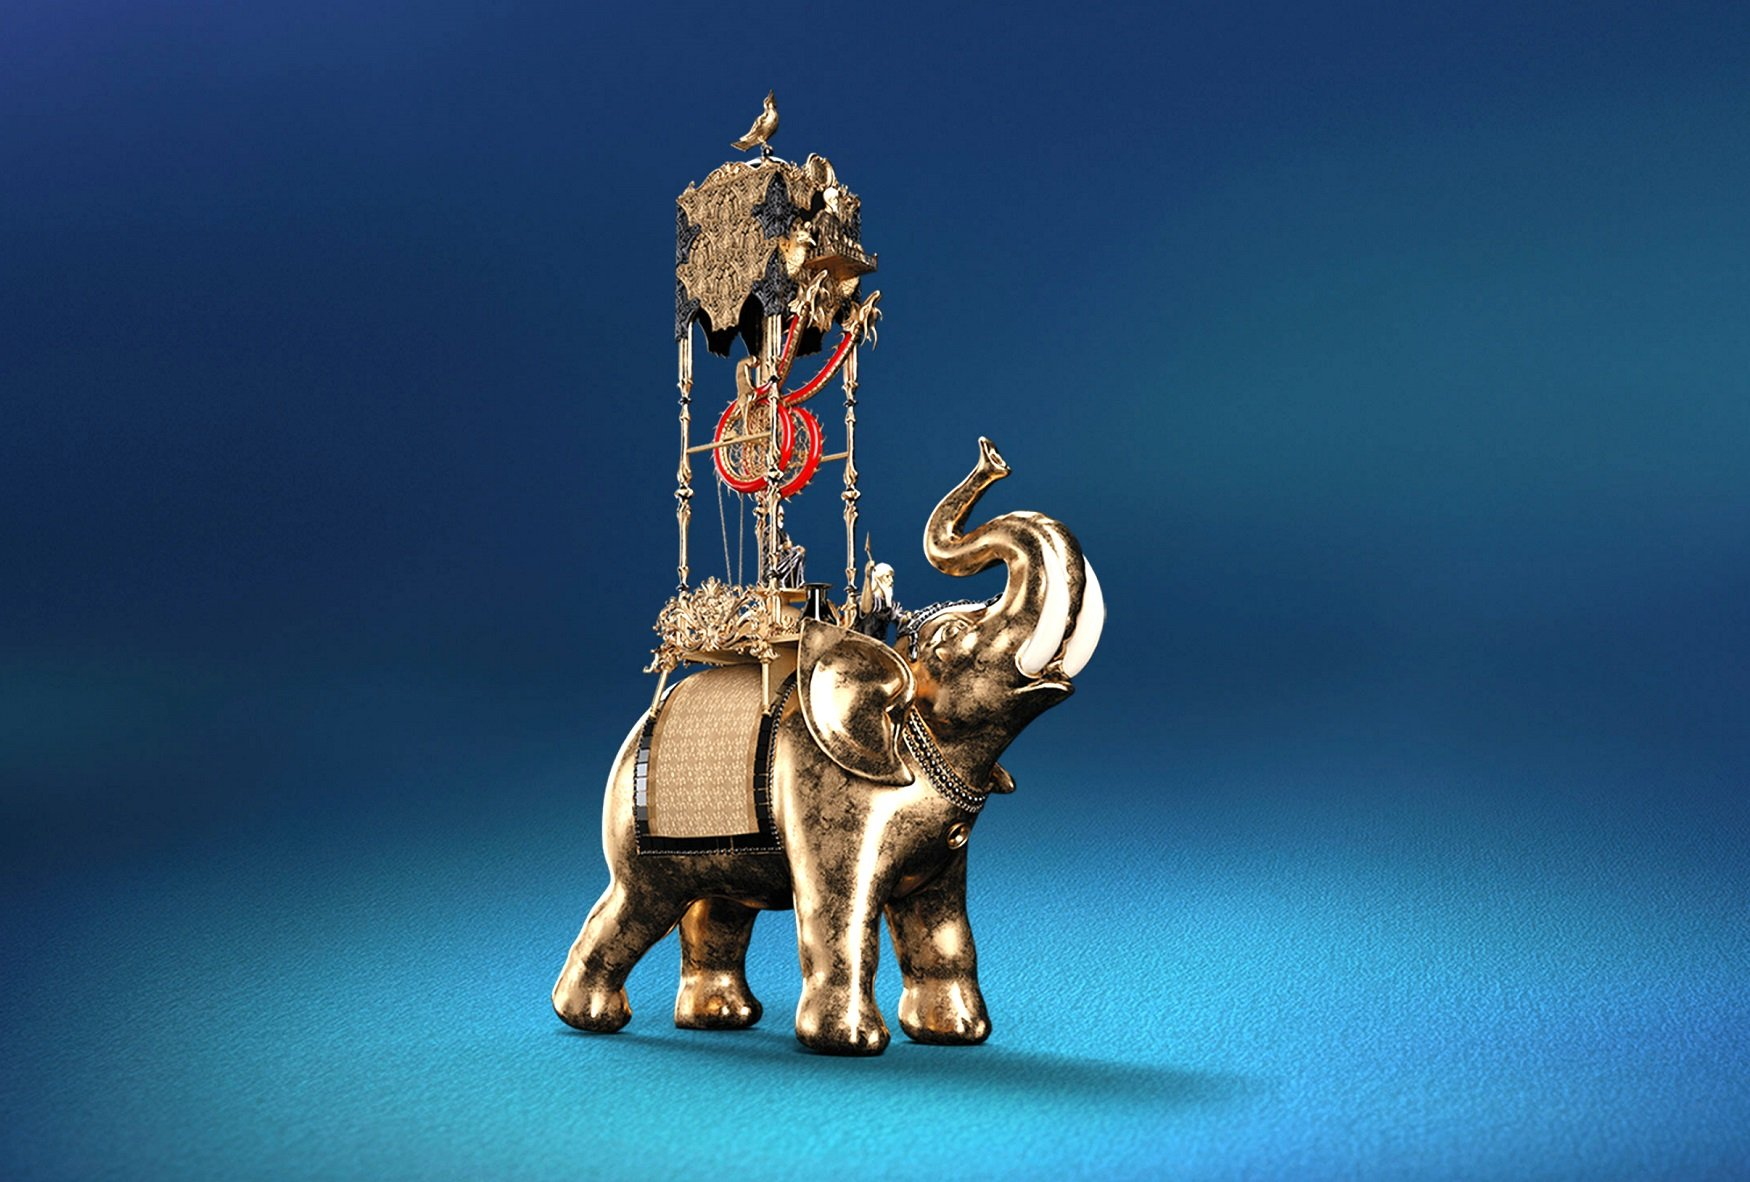 This elephant clock is al-Jazari's most famous and complex work: it told the time every 30 minutes